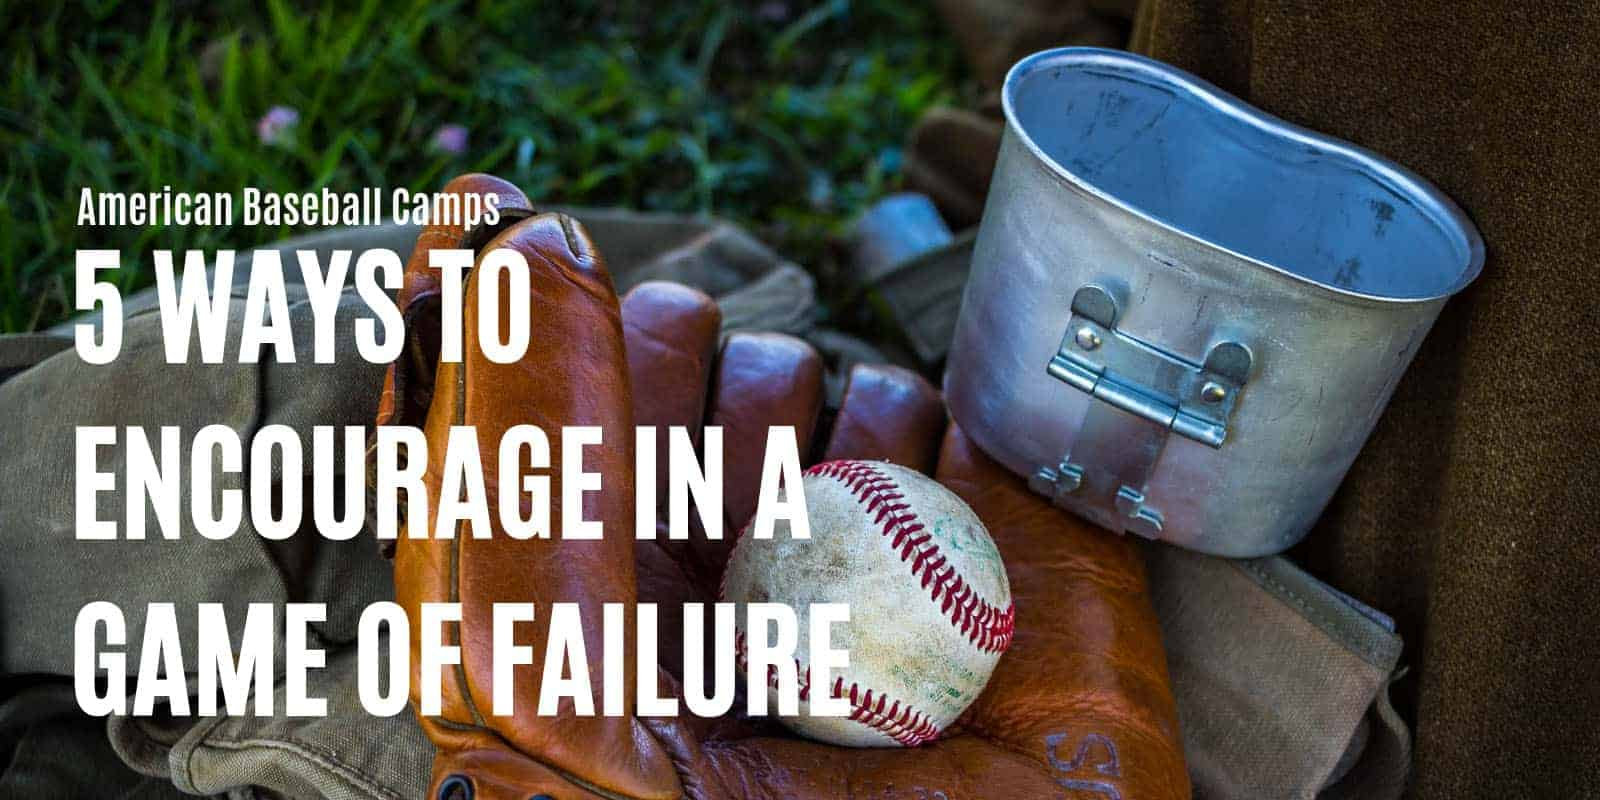 American Baseball Camps — 5 Ways to Encourage in a Game of Failure